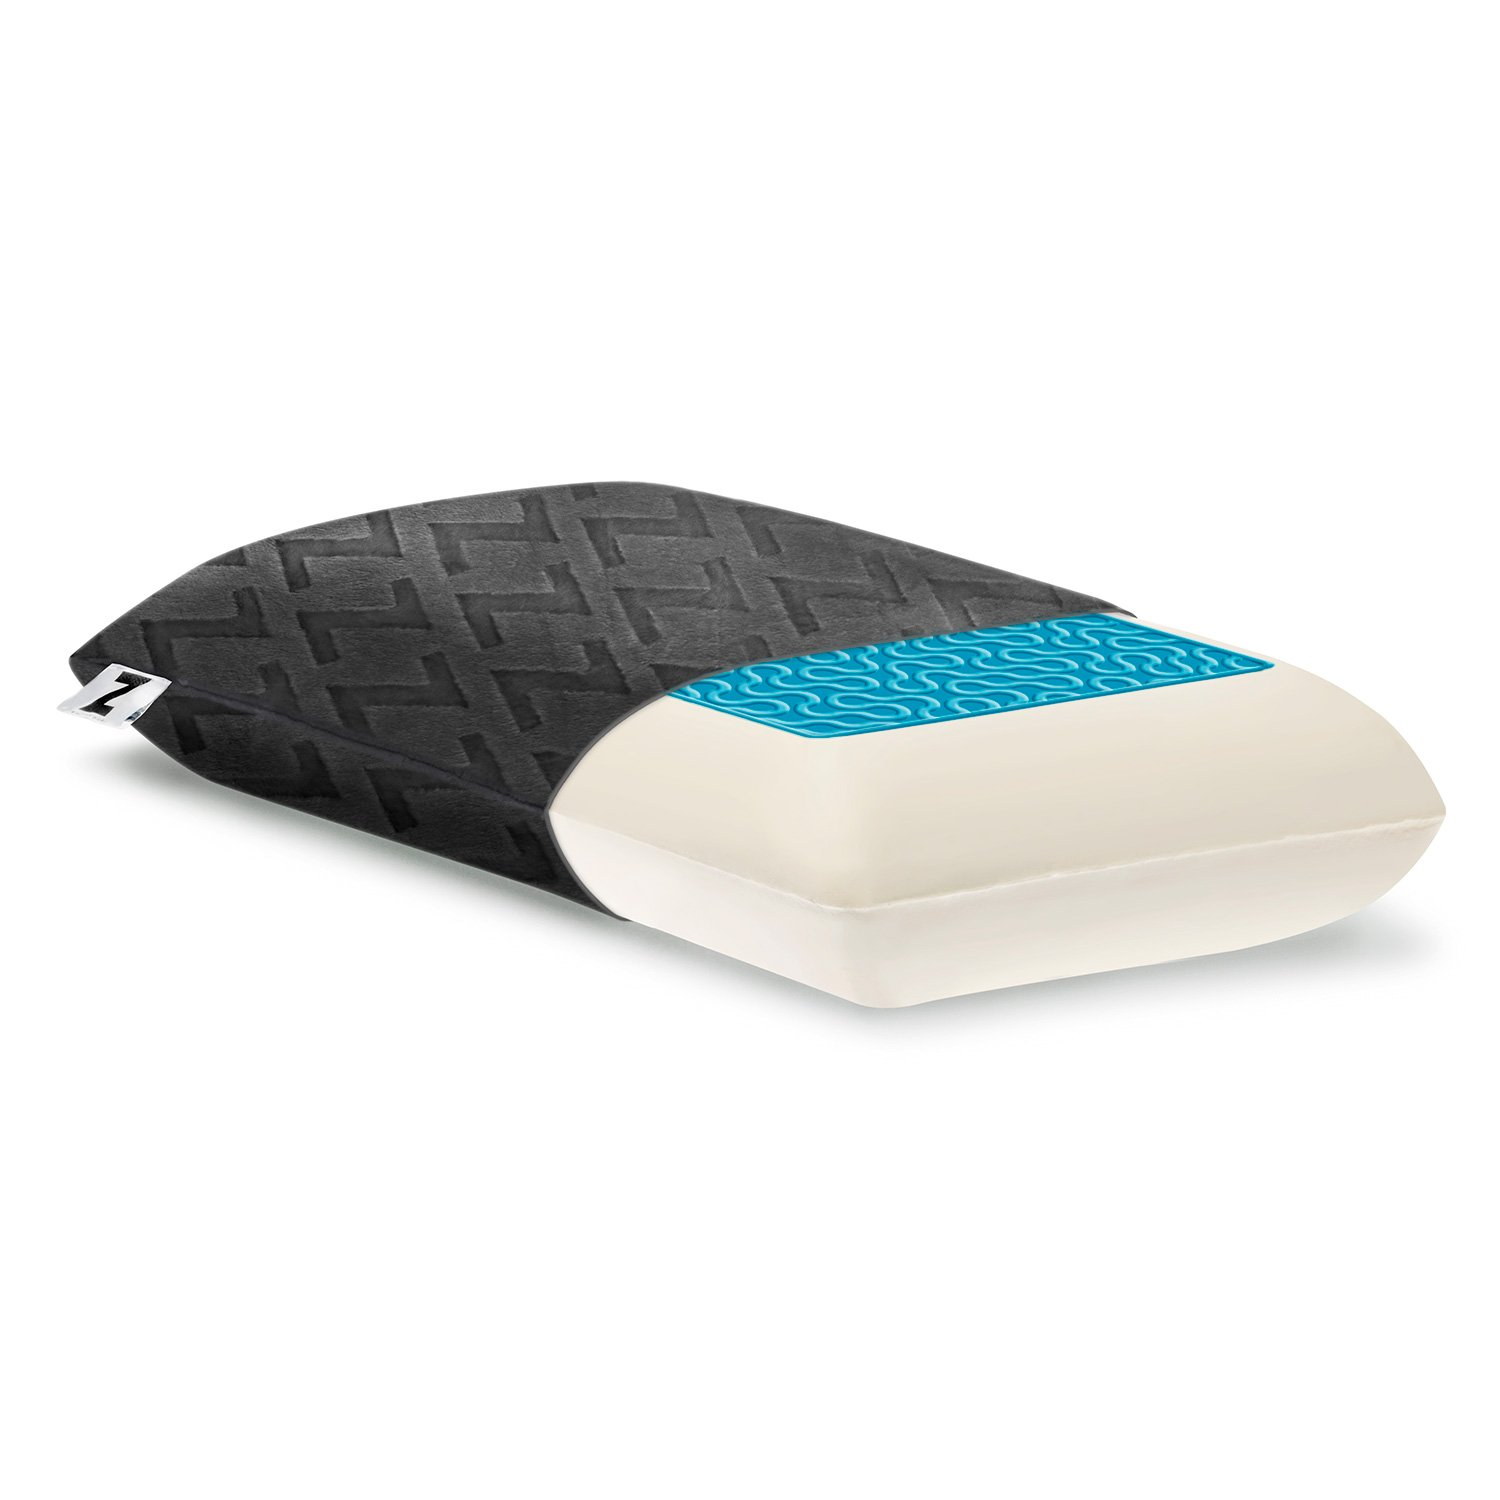 MALOUF Z by Travel DOUGH Memory Foam + Z Gel Pillow Removable Rayon from Bamboo Velour Cover 5-Year Warranty